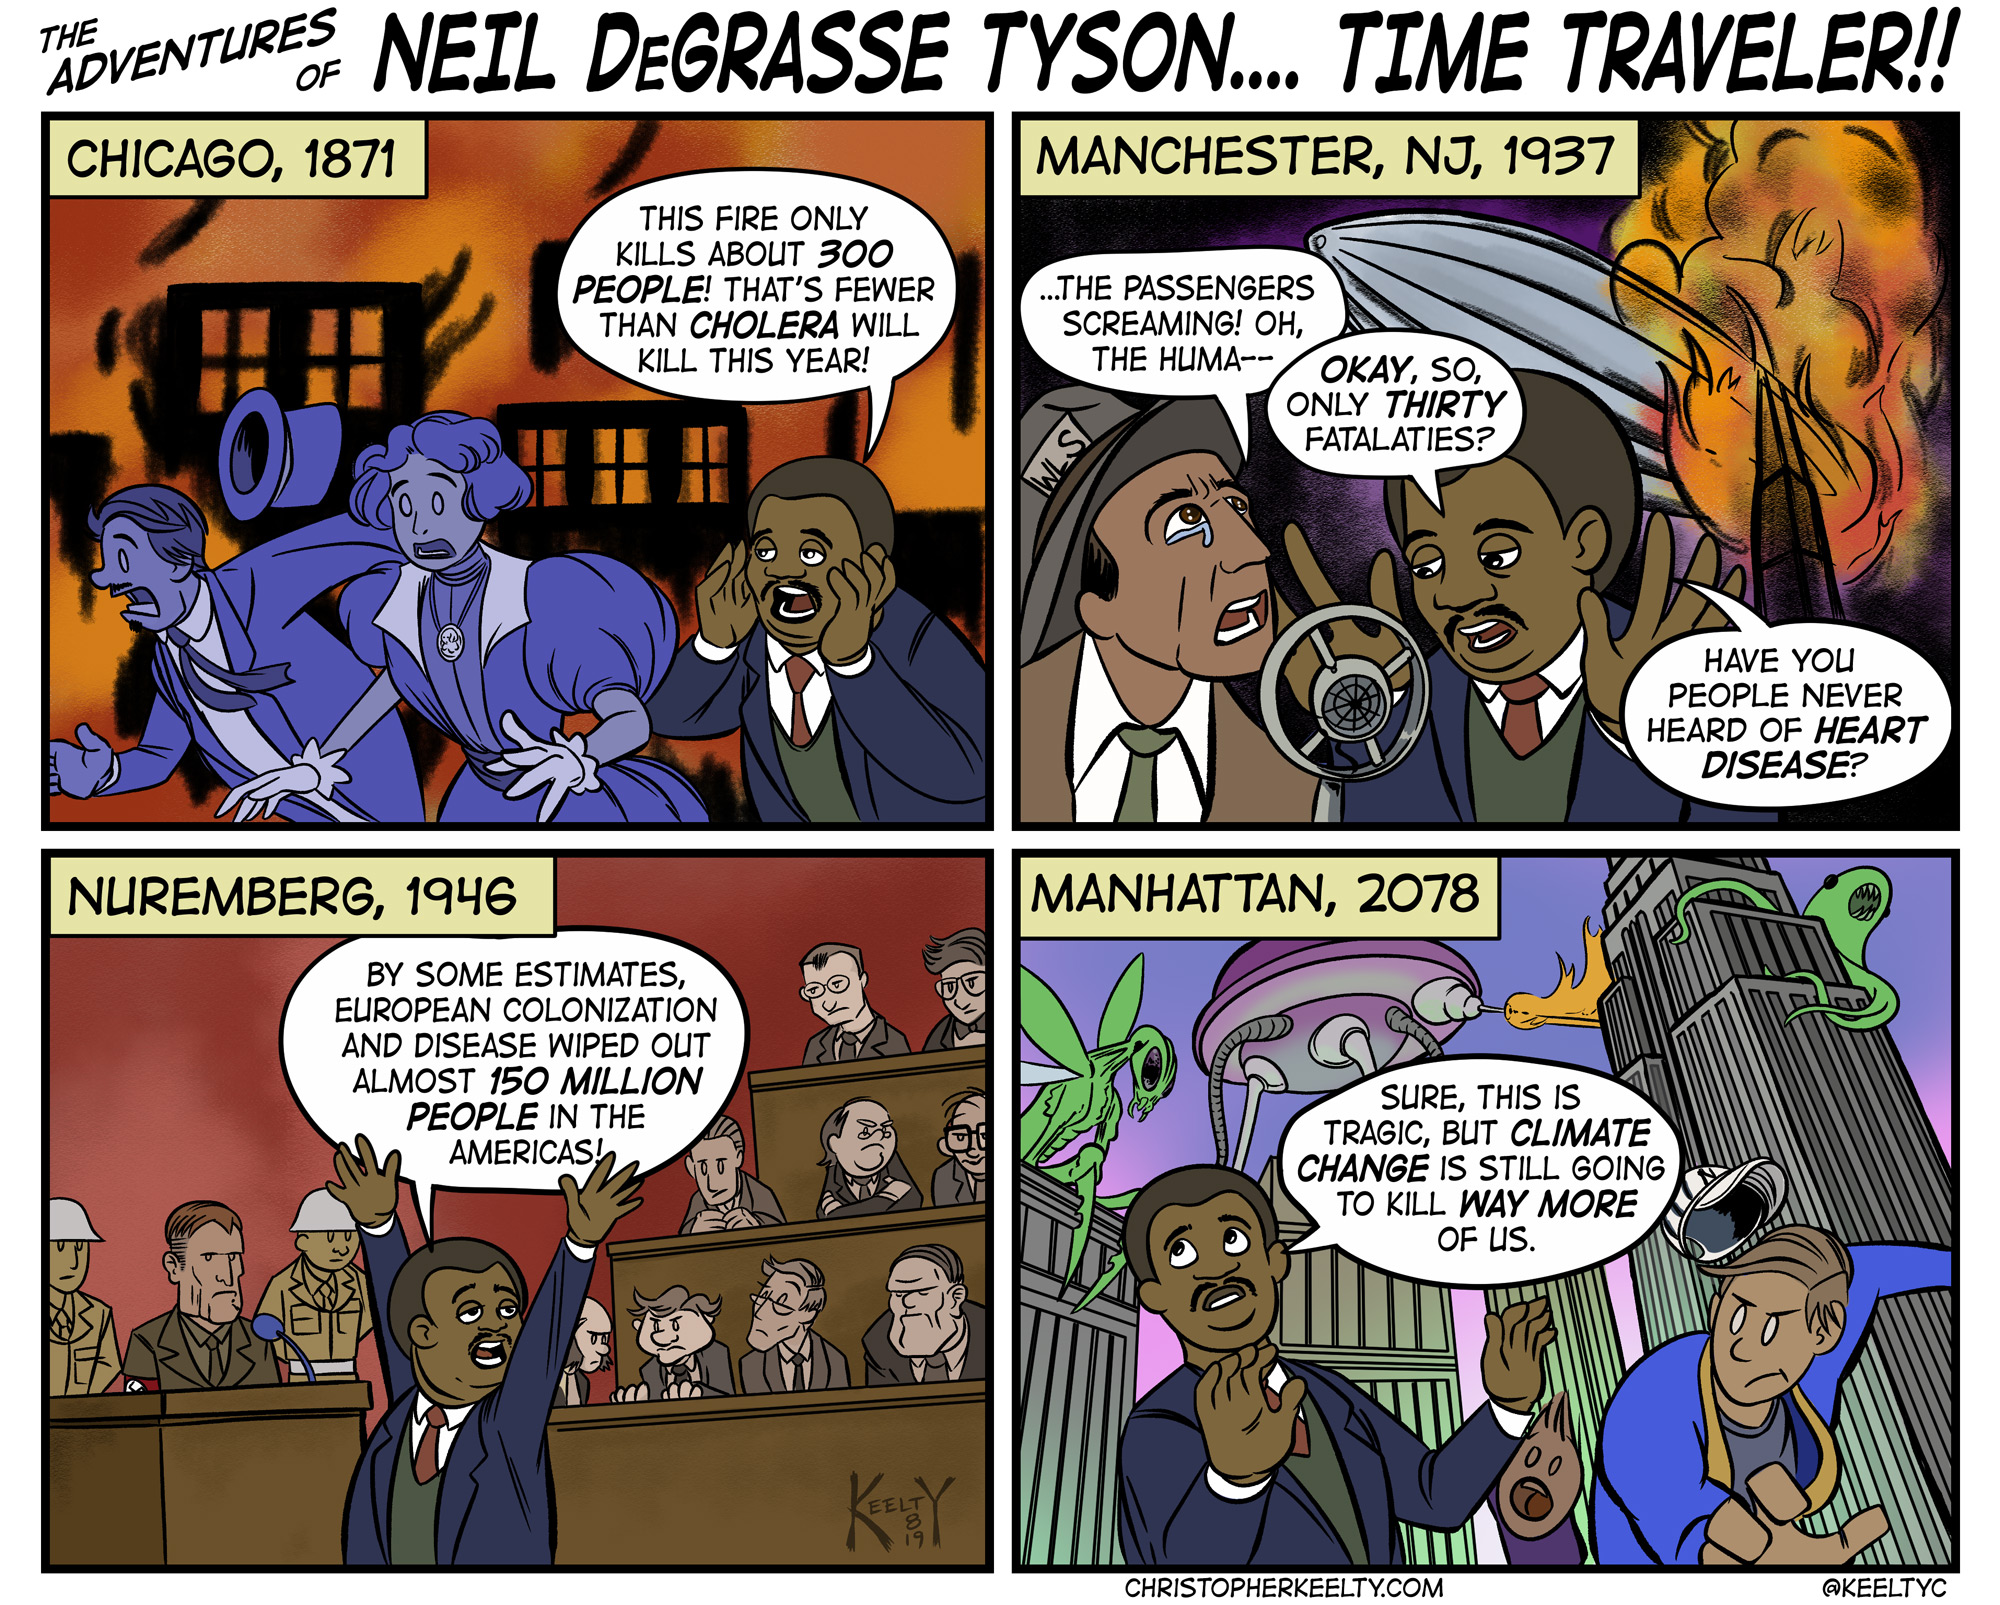 I give it about two weeks before the world forgets Neil DeGrasse Tyson was ever a dick about mass shootings.